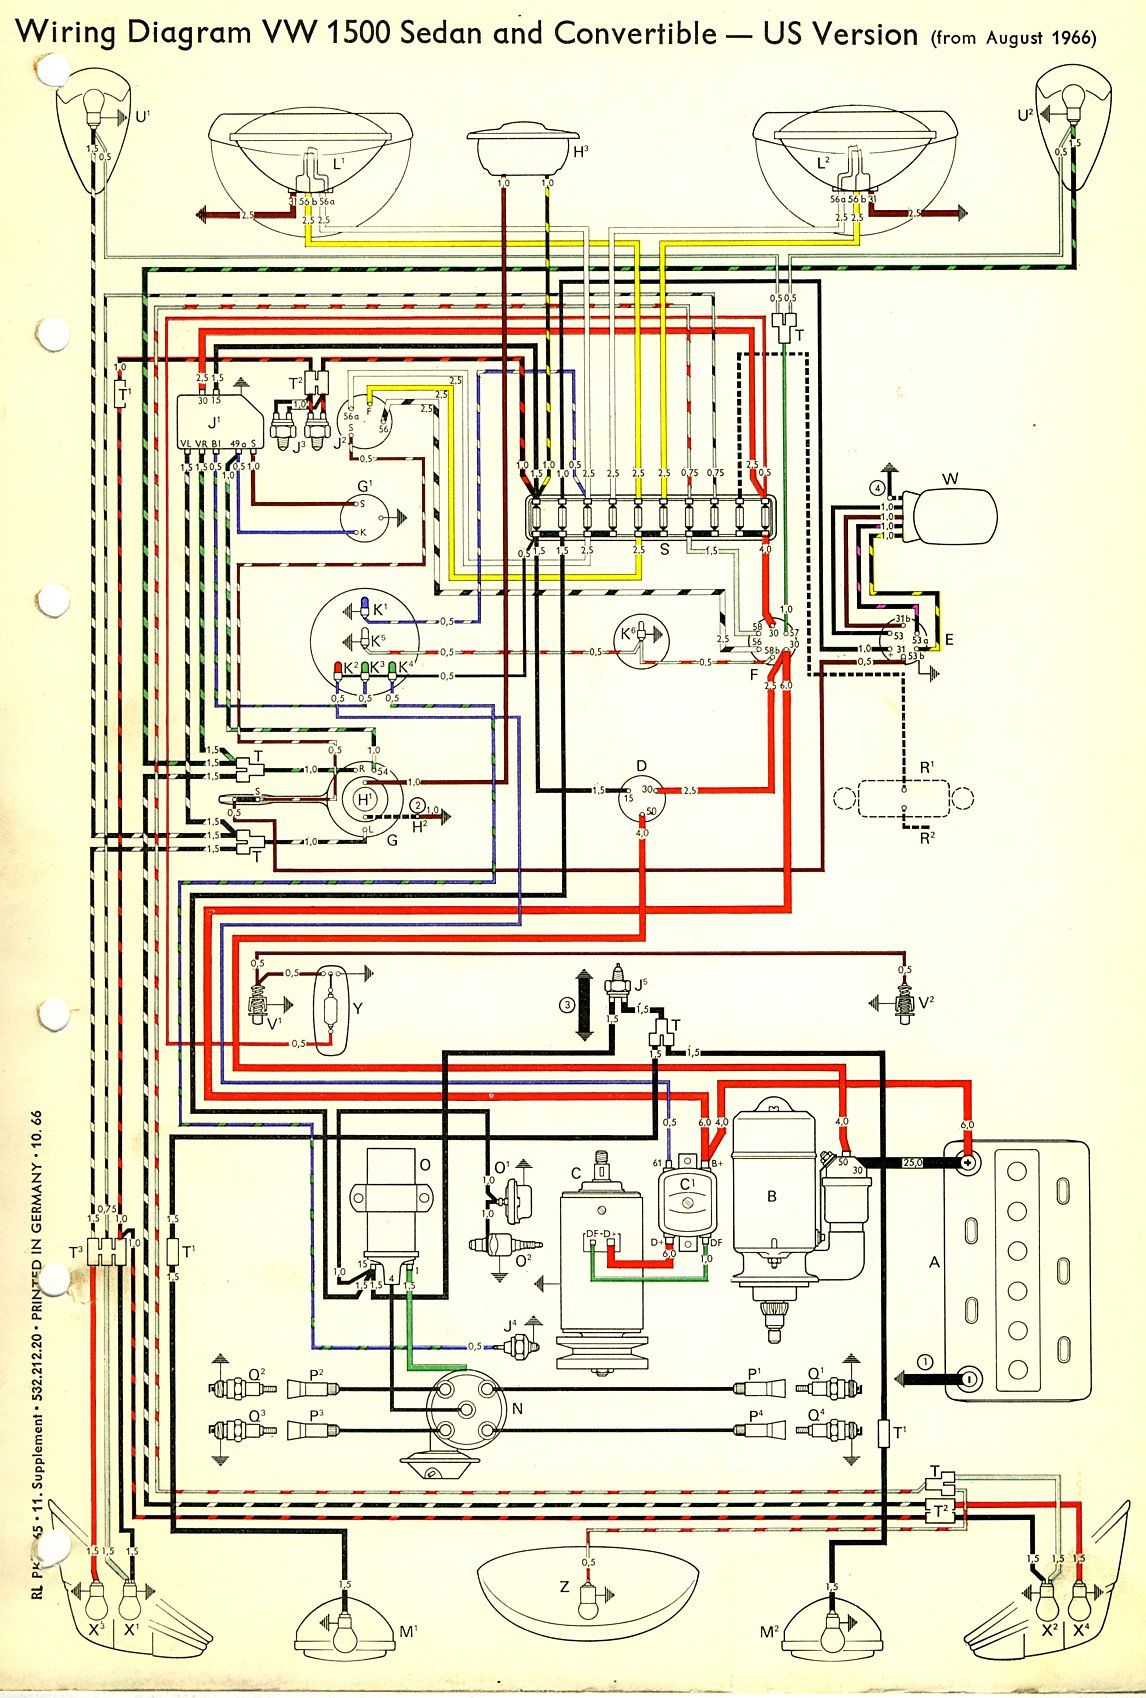 1adf990c0efb617c789fdd21338448b0 1967 beetle wiring diagram (usa) thegoldenbug com best 1967 vw 1971 vw bus wiring diagram at cos-gaming.co